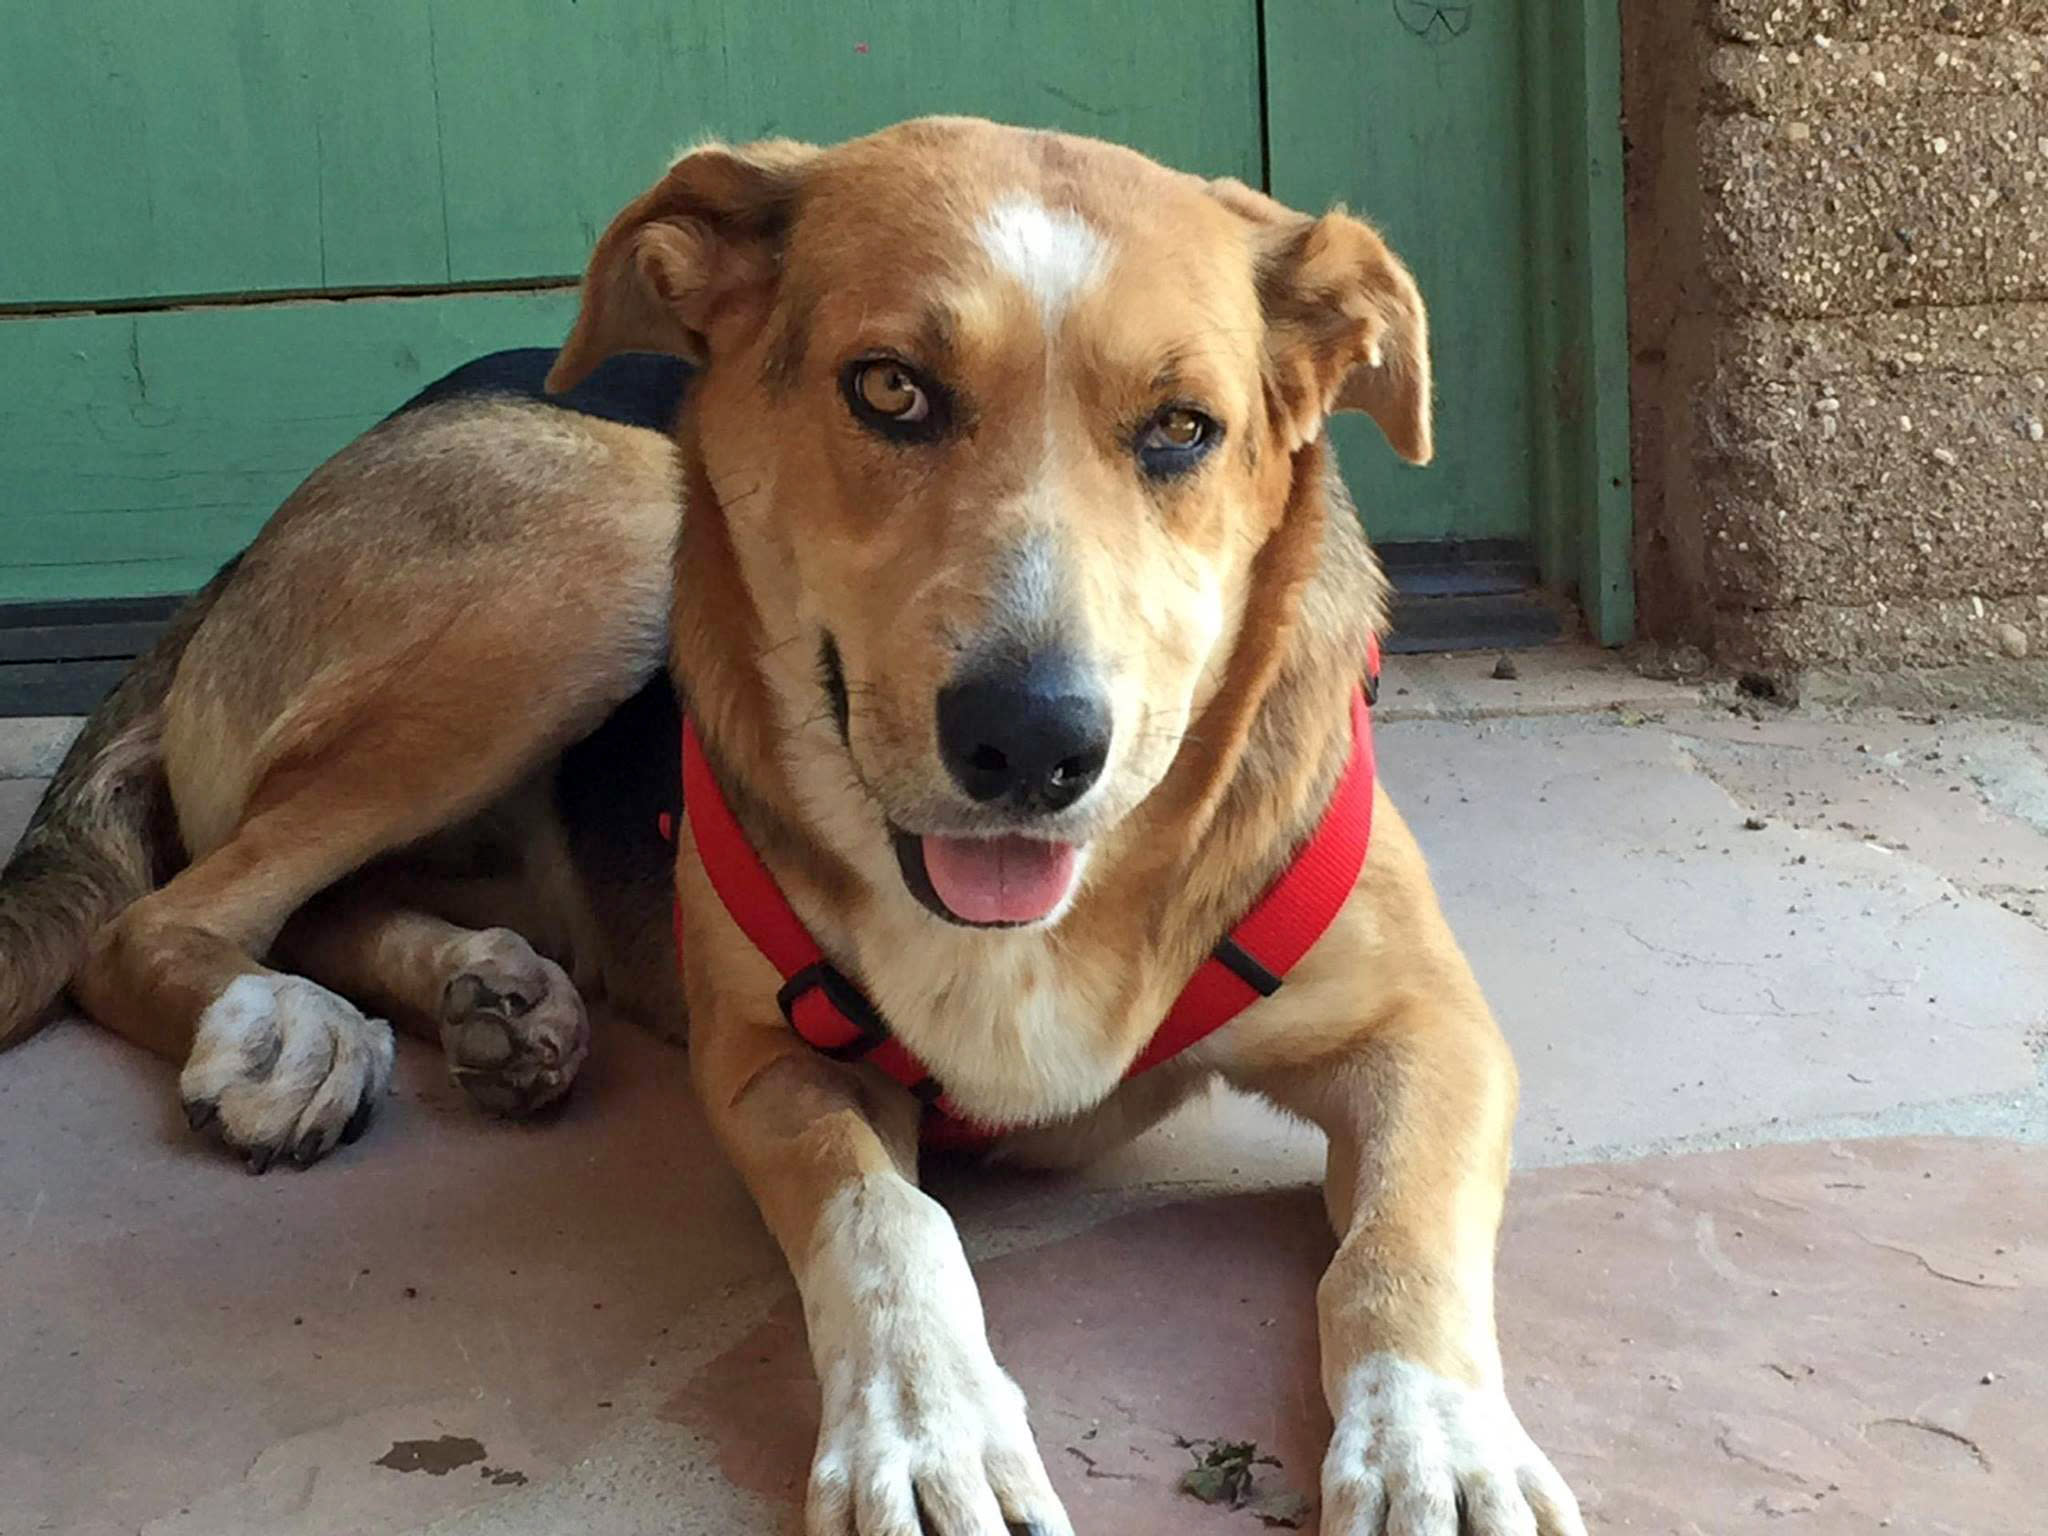 Donations pour in for Arizona dog found hanging from tree